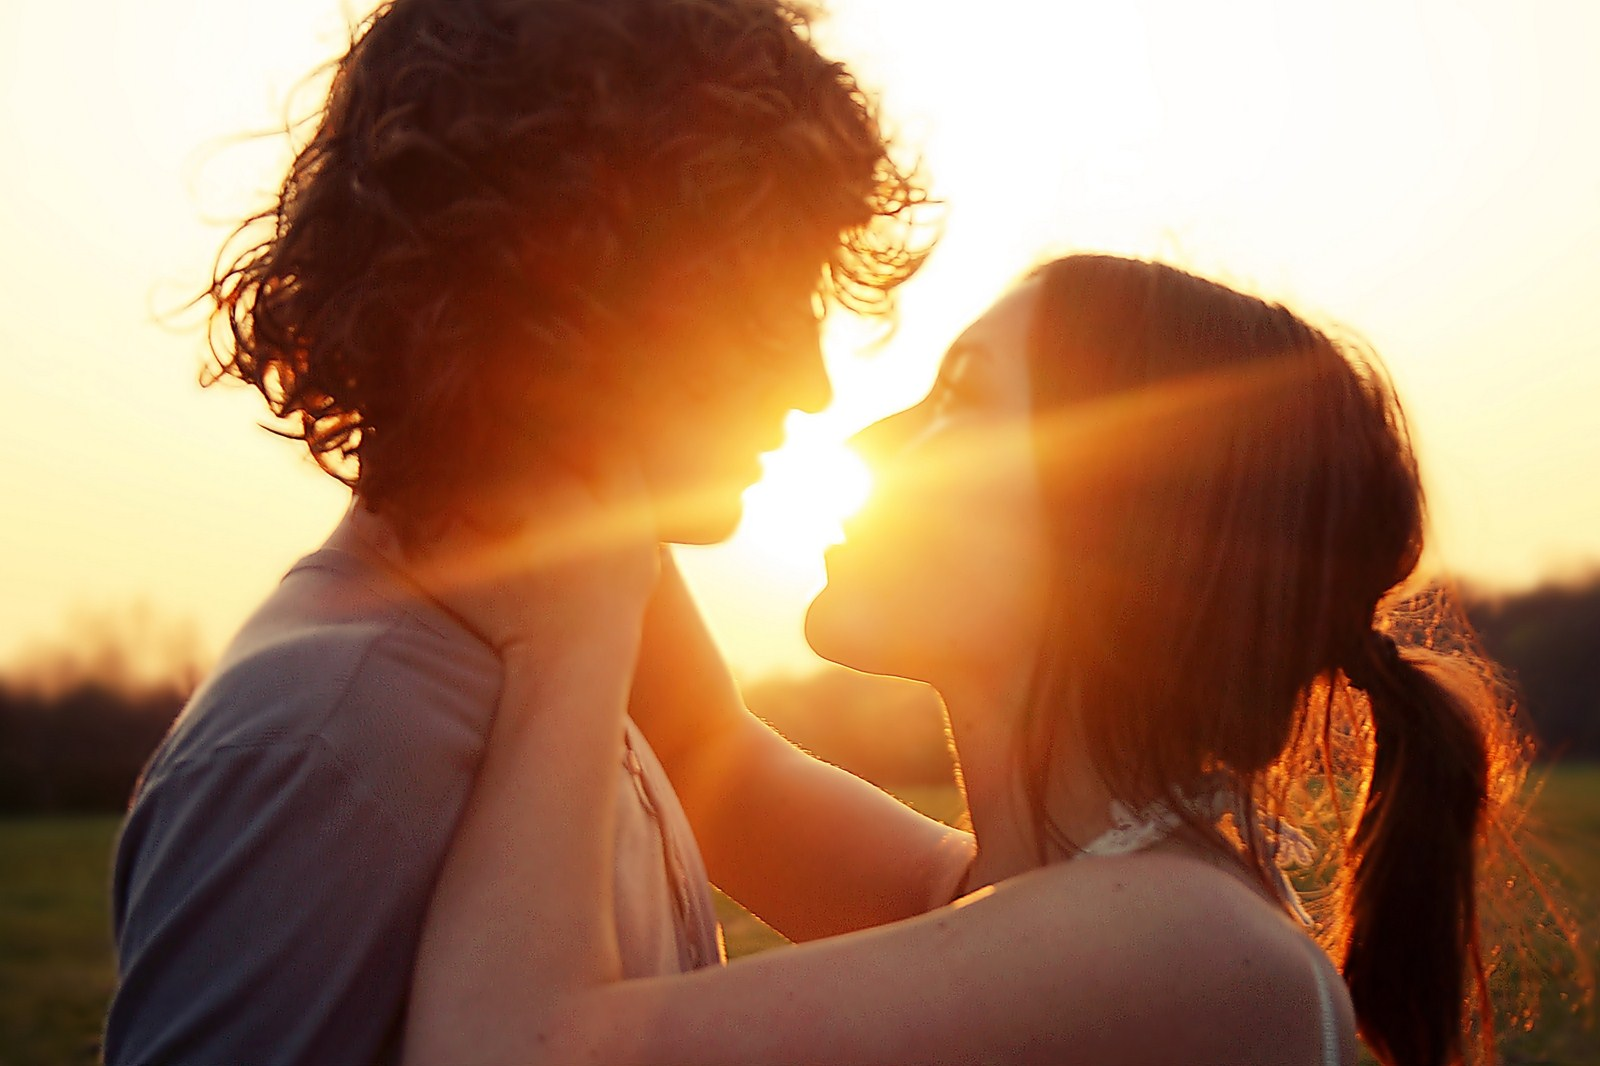 Love Hot couple Hd Wallpaper : Sun Summer Love couple Magic Moment Mood Romance Photo HD Wallpaper Love Wallpapers Romantic ...